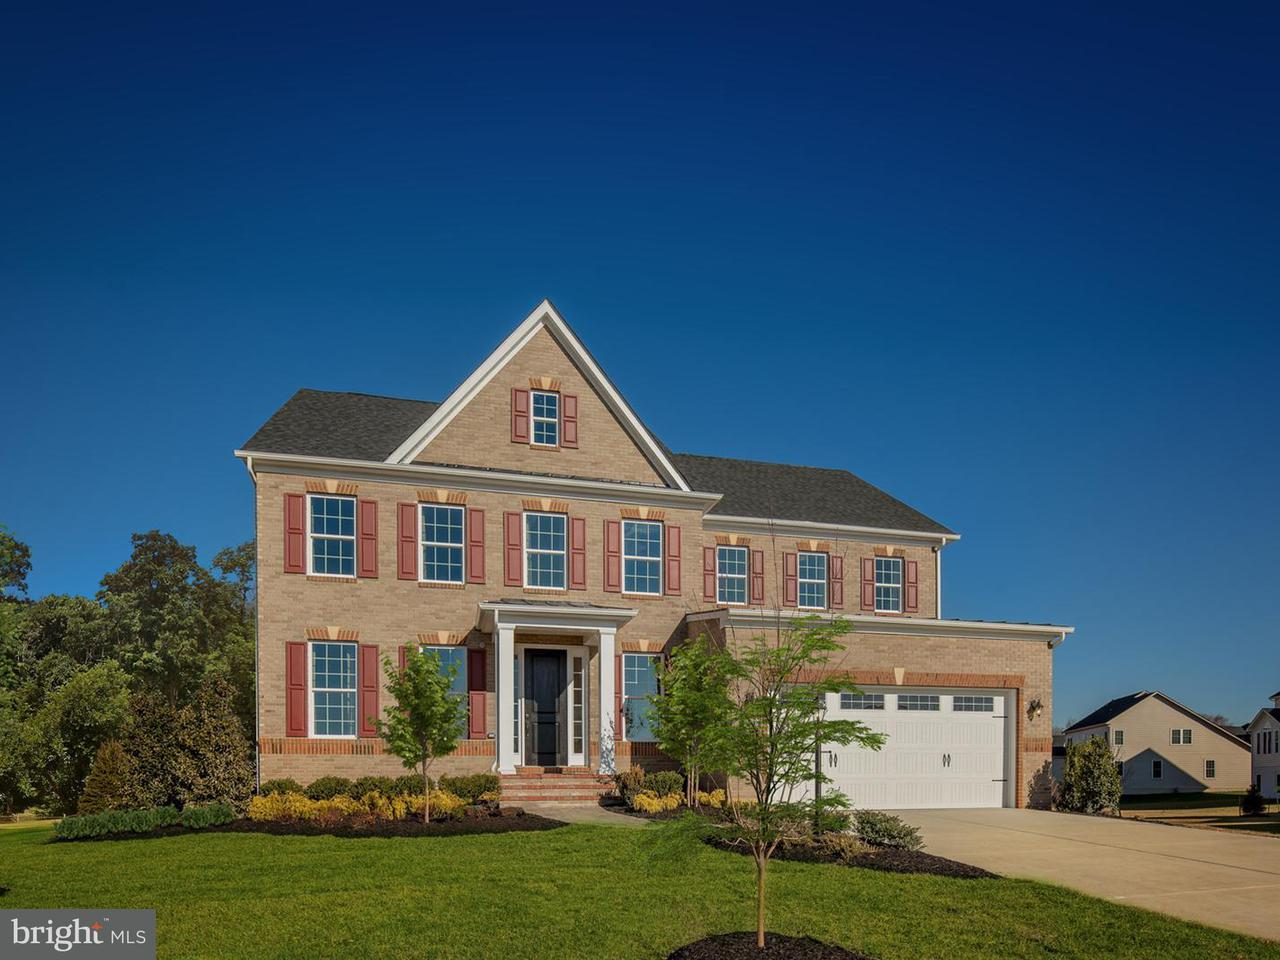 Single Family Home for Sale at 13808 HAMMERMILL FIELD Drive 13808 HAMMERMILL FIELD Drive Bowie, Maryland 20720 United States